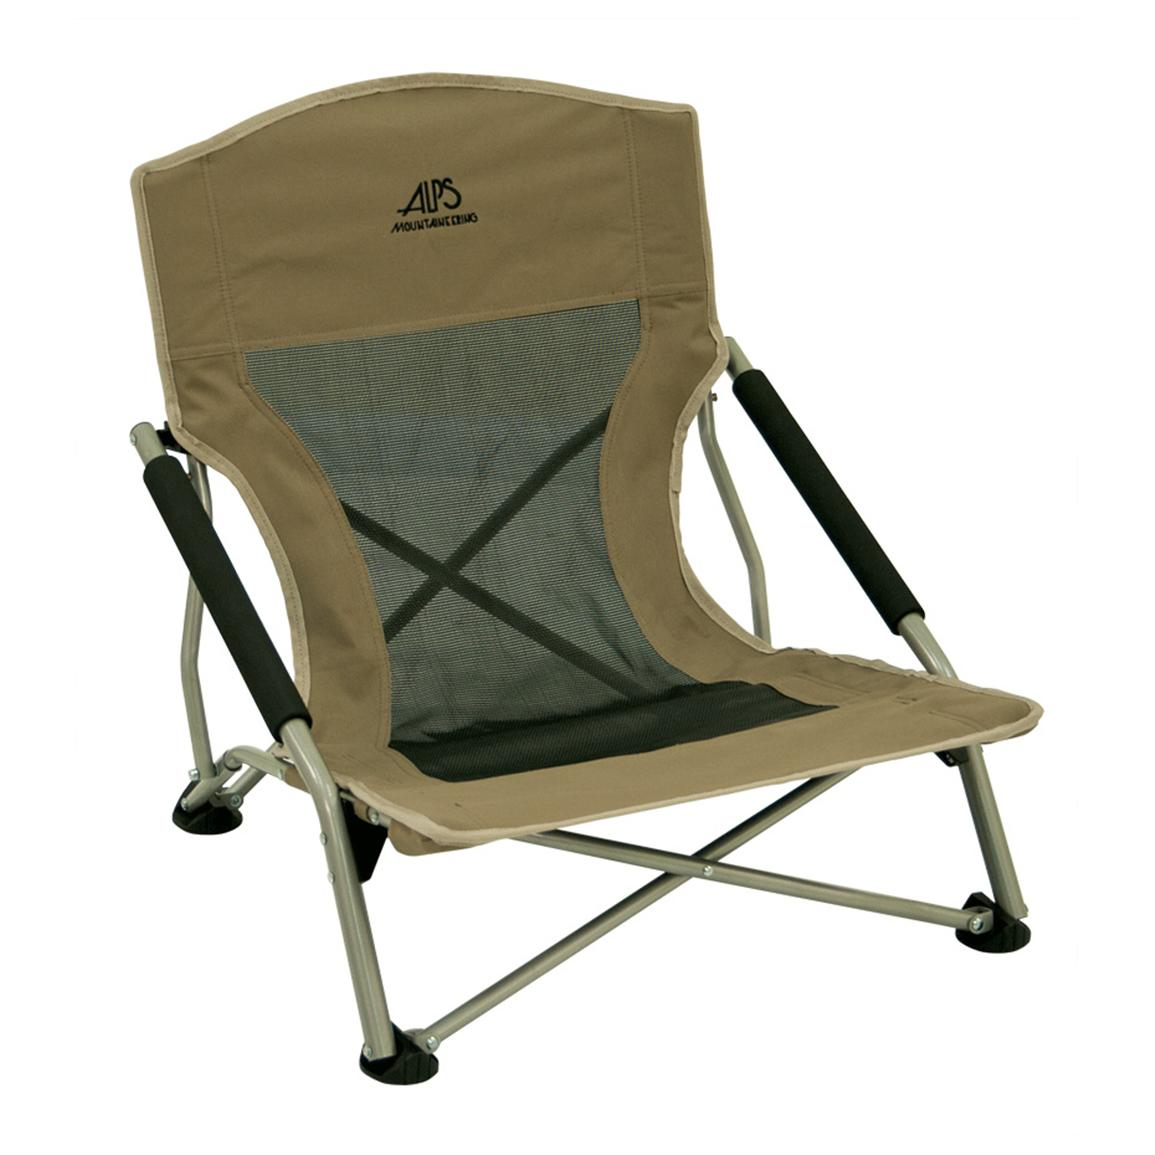 chair leg covers canadian tire modern reception chairs for office alps rendezvous folding camp 227980 patio